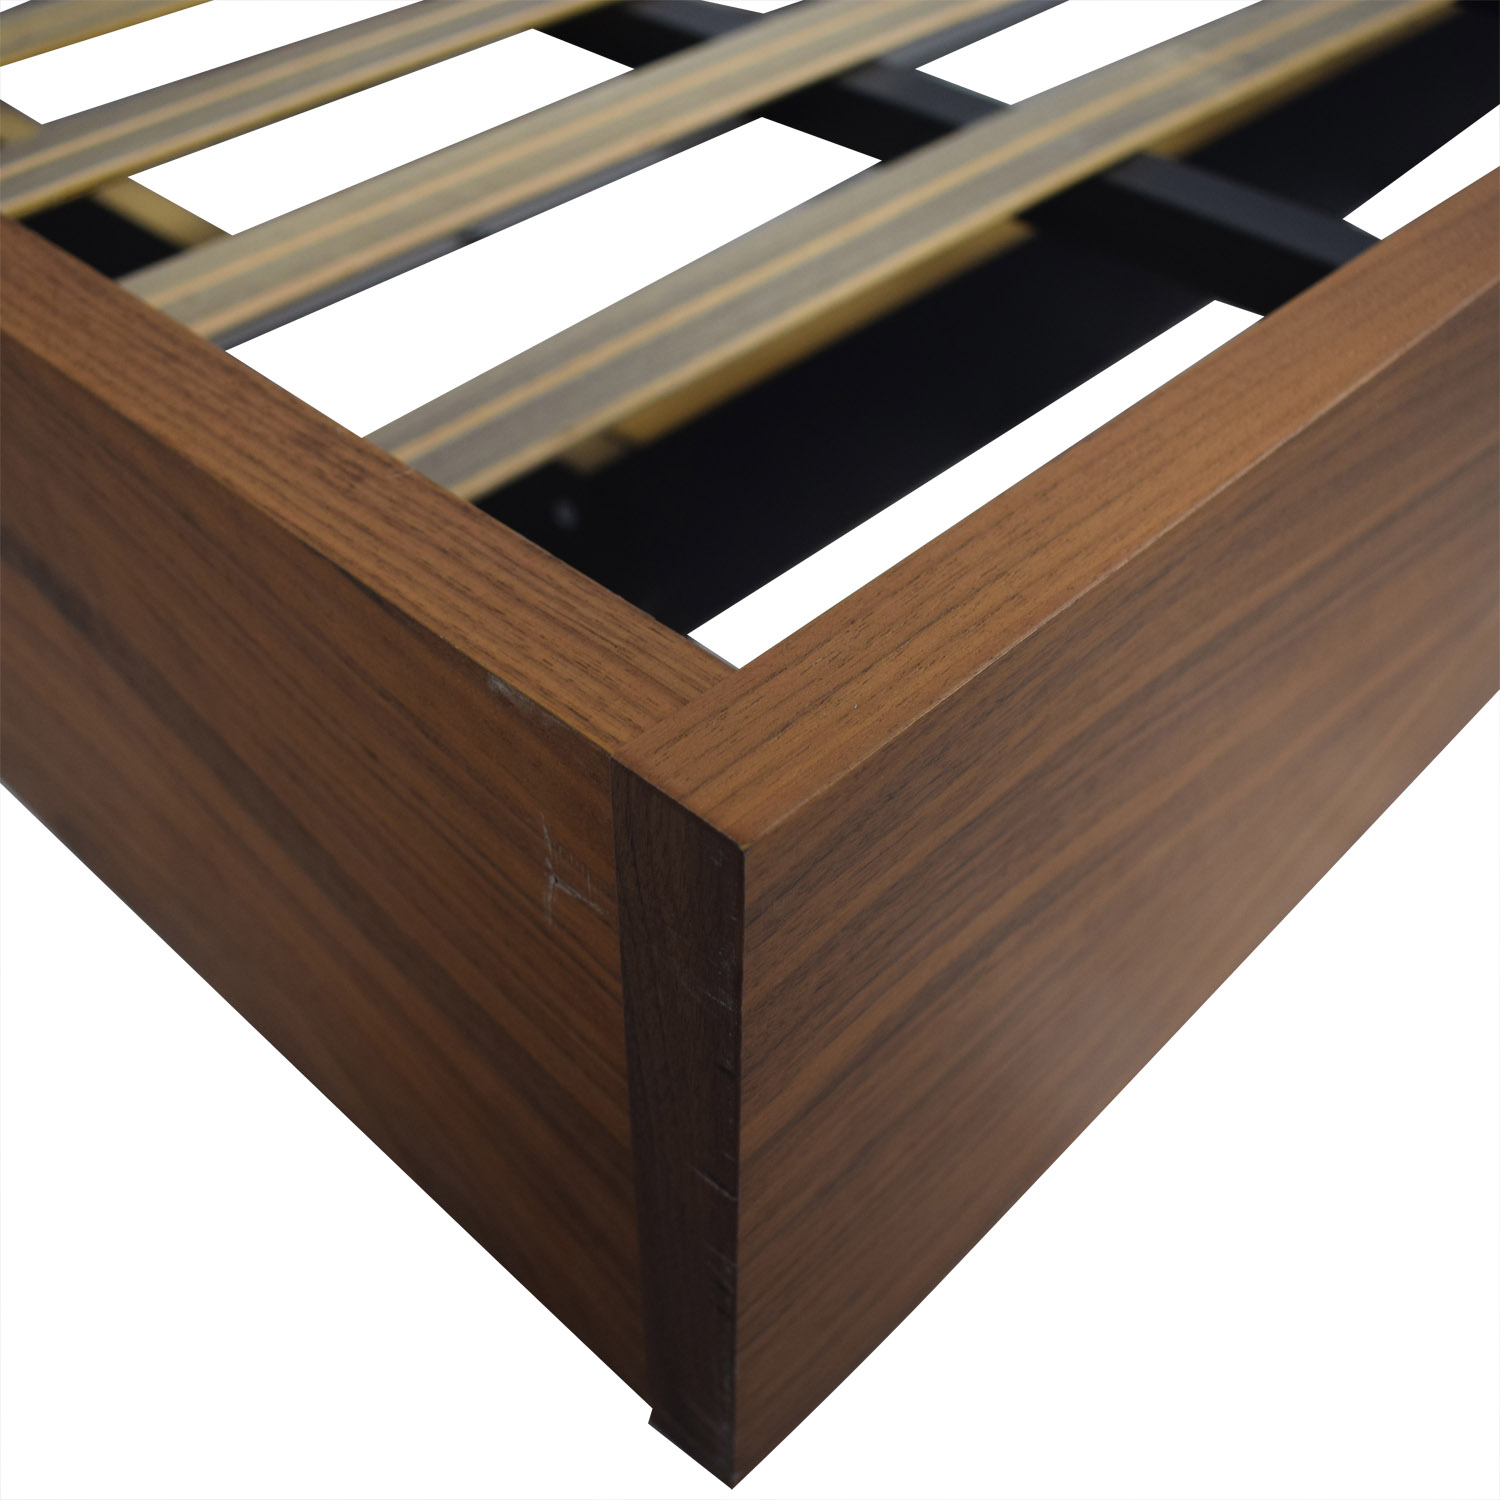 Walnut Float Platform Queen Bed Frame for sale